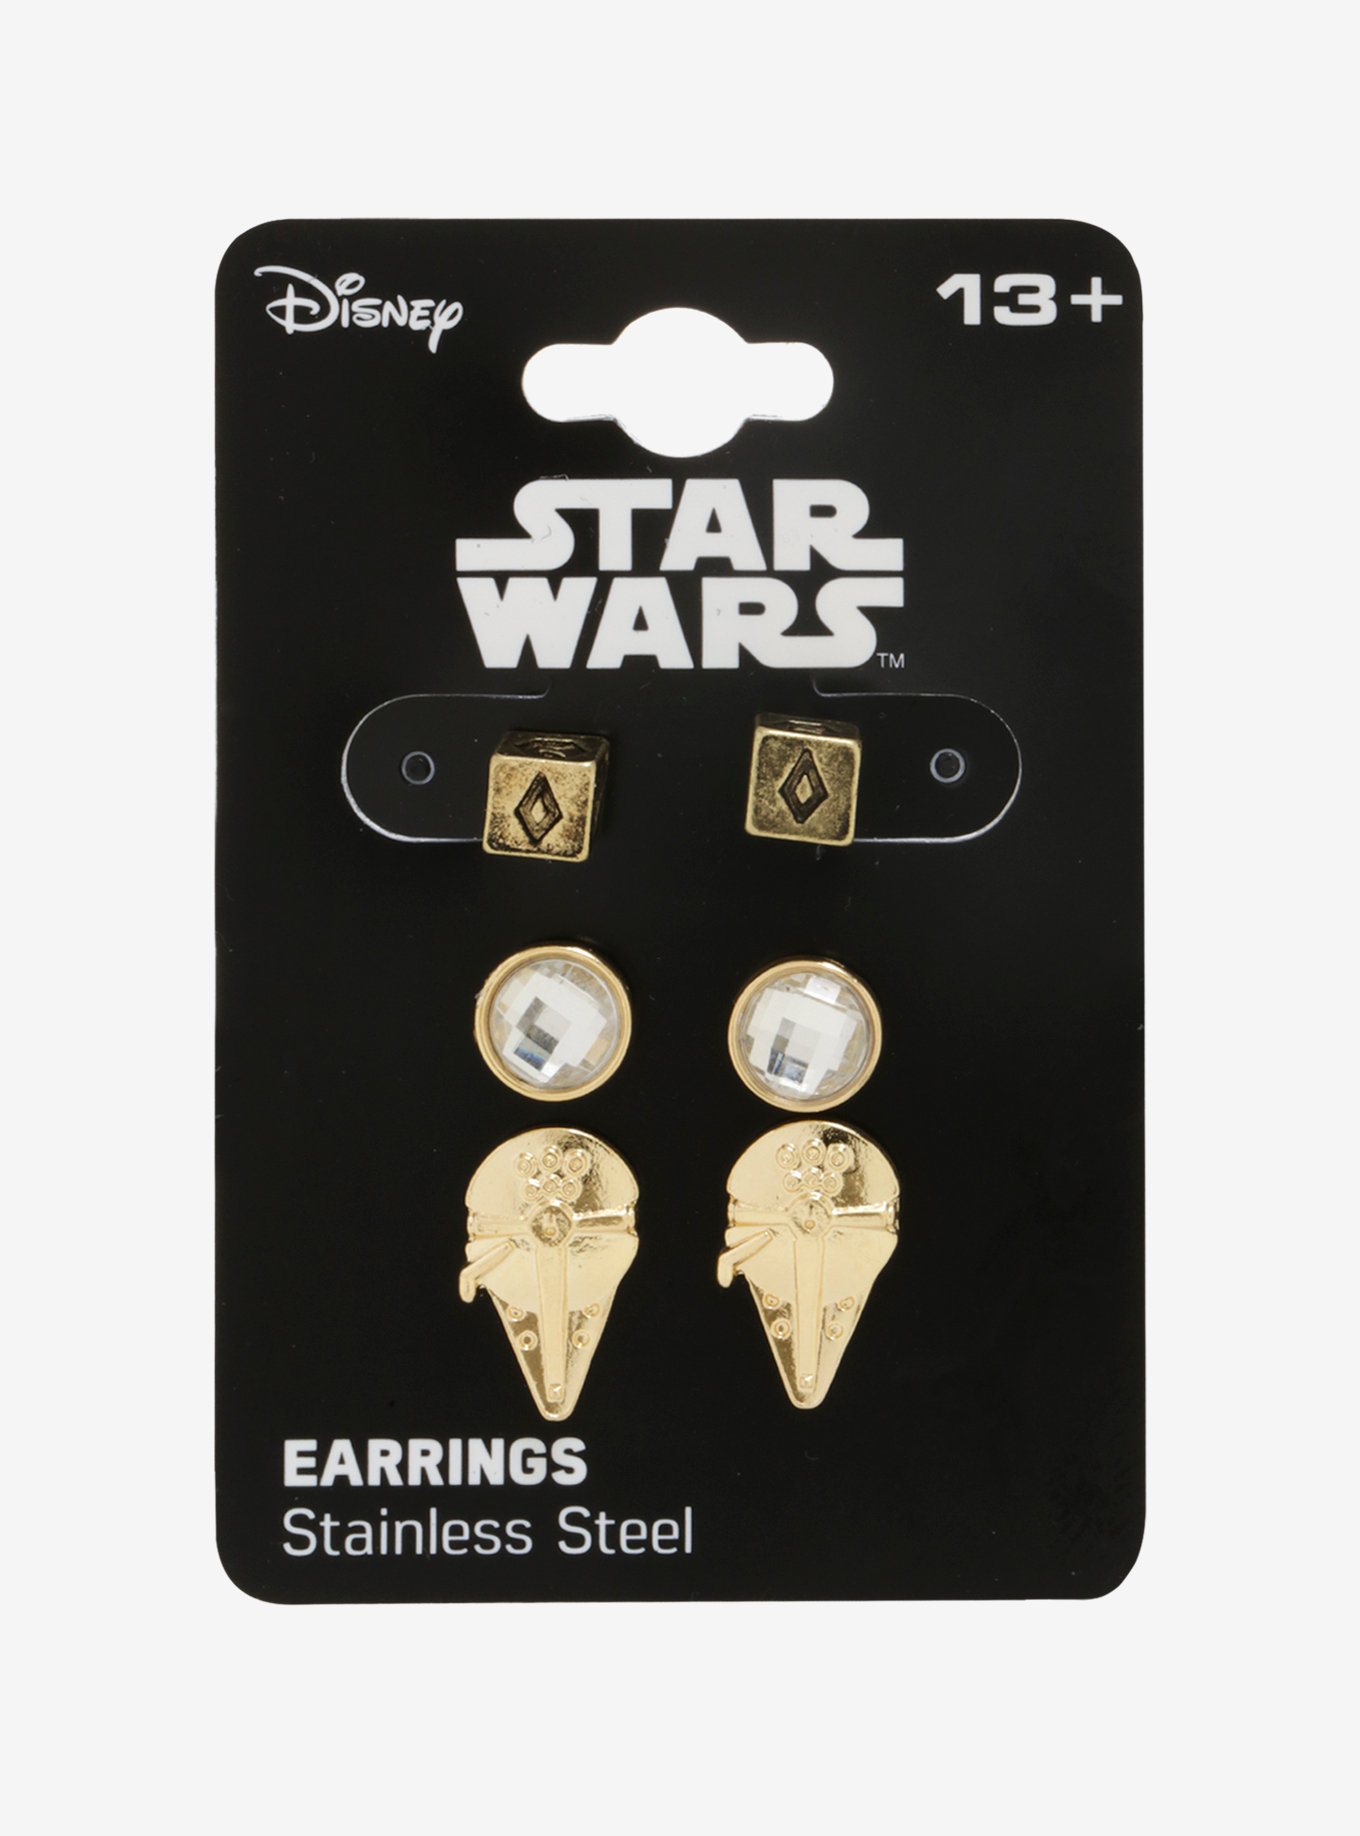 Solo A Star Wars Story Millennium Falcon Dice Stud Earring Set at Hot Topic